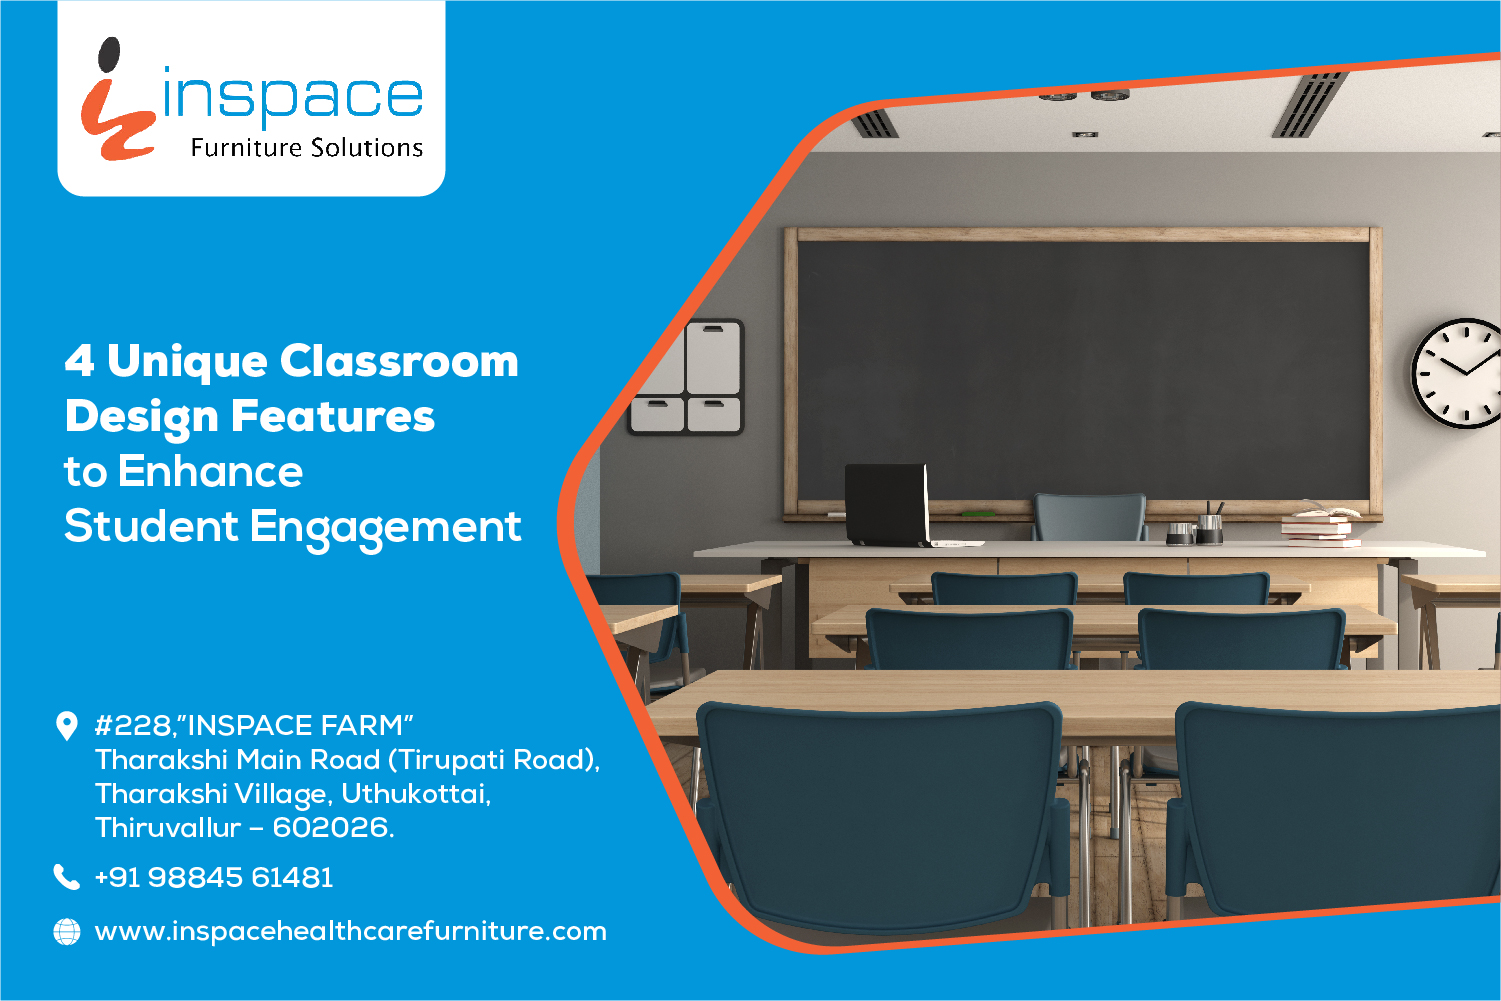 Poster of inspace furniture solutions depicting board, clock, desk, and table neatly arranged in the classroom environment with their address and contact number